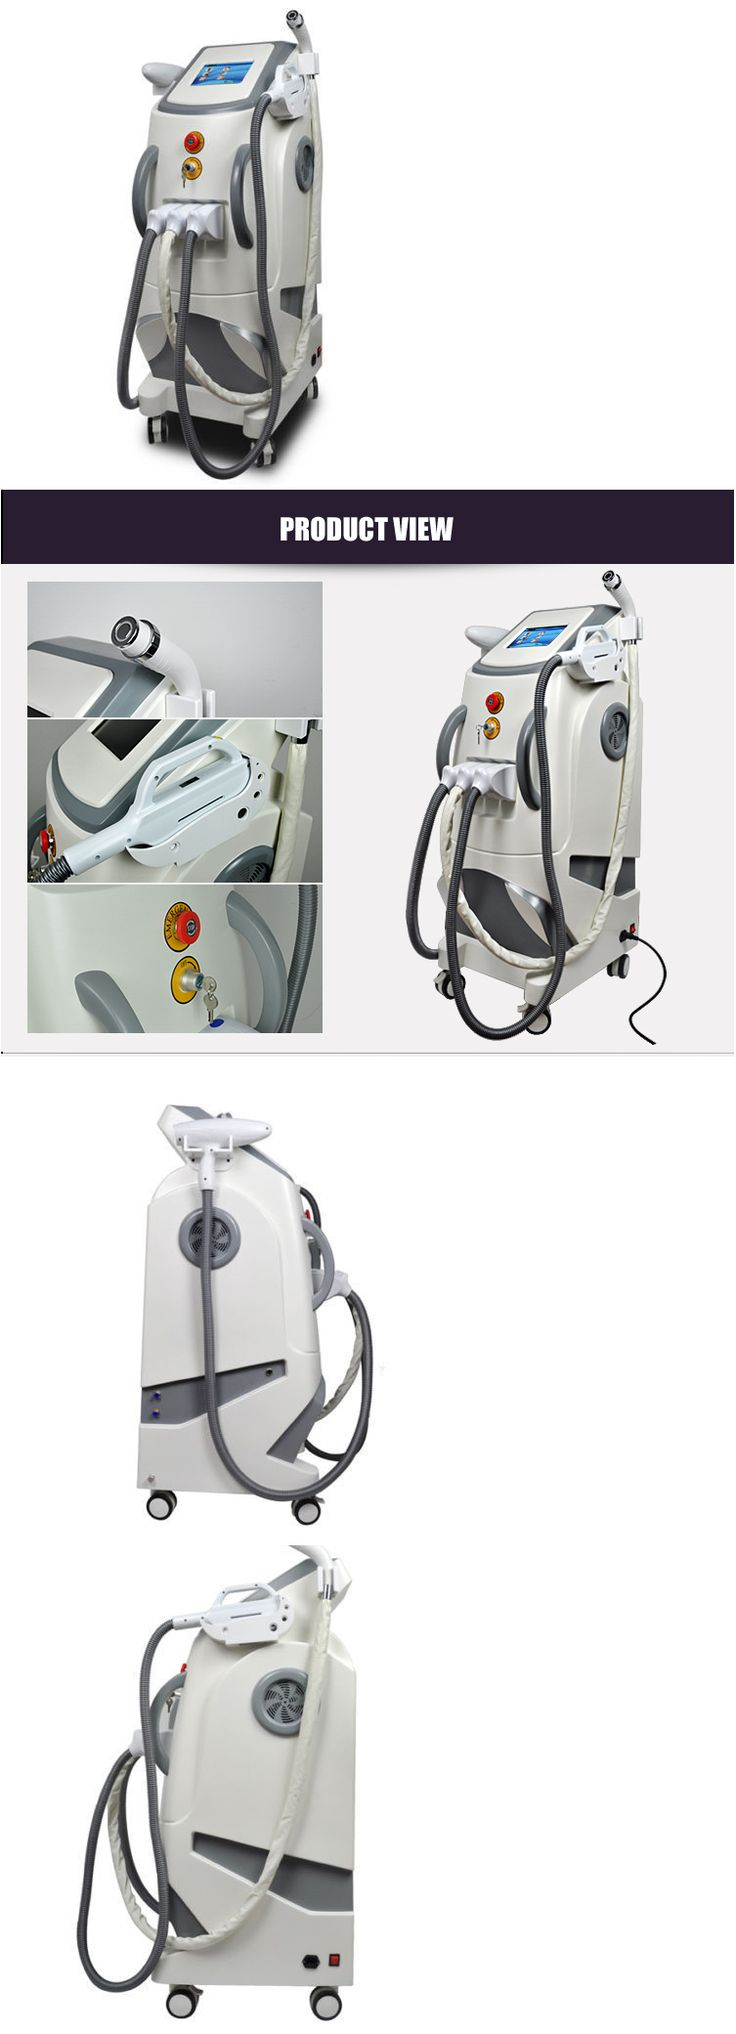 Tattoo Removal Machines: Salon Use Nd Yag Laser Tattoo Spots Removal Machine Ipl Elight Hair Removal Rf -> BUY IT NOW ONLY: $4800 on eBay!